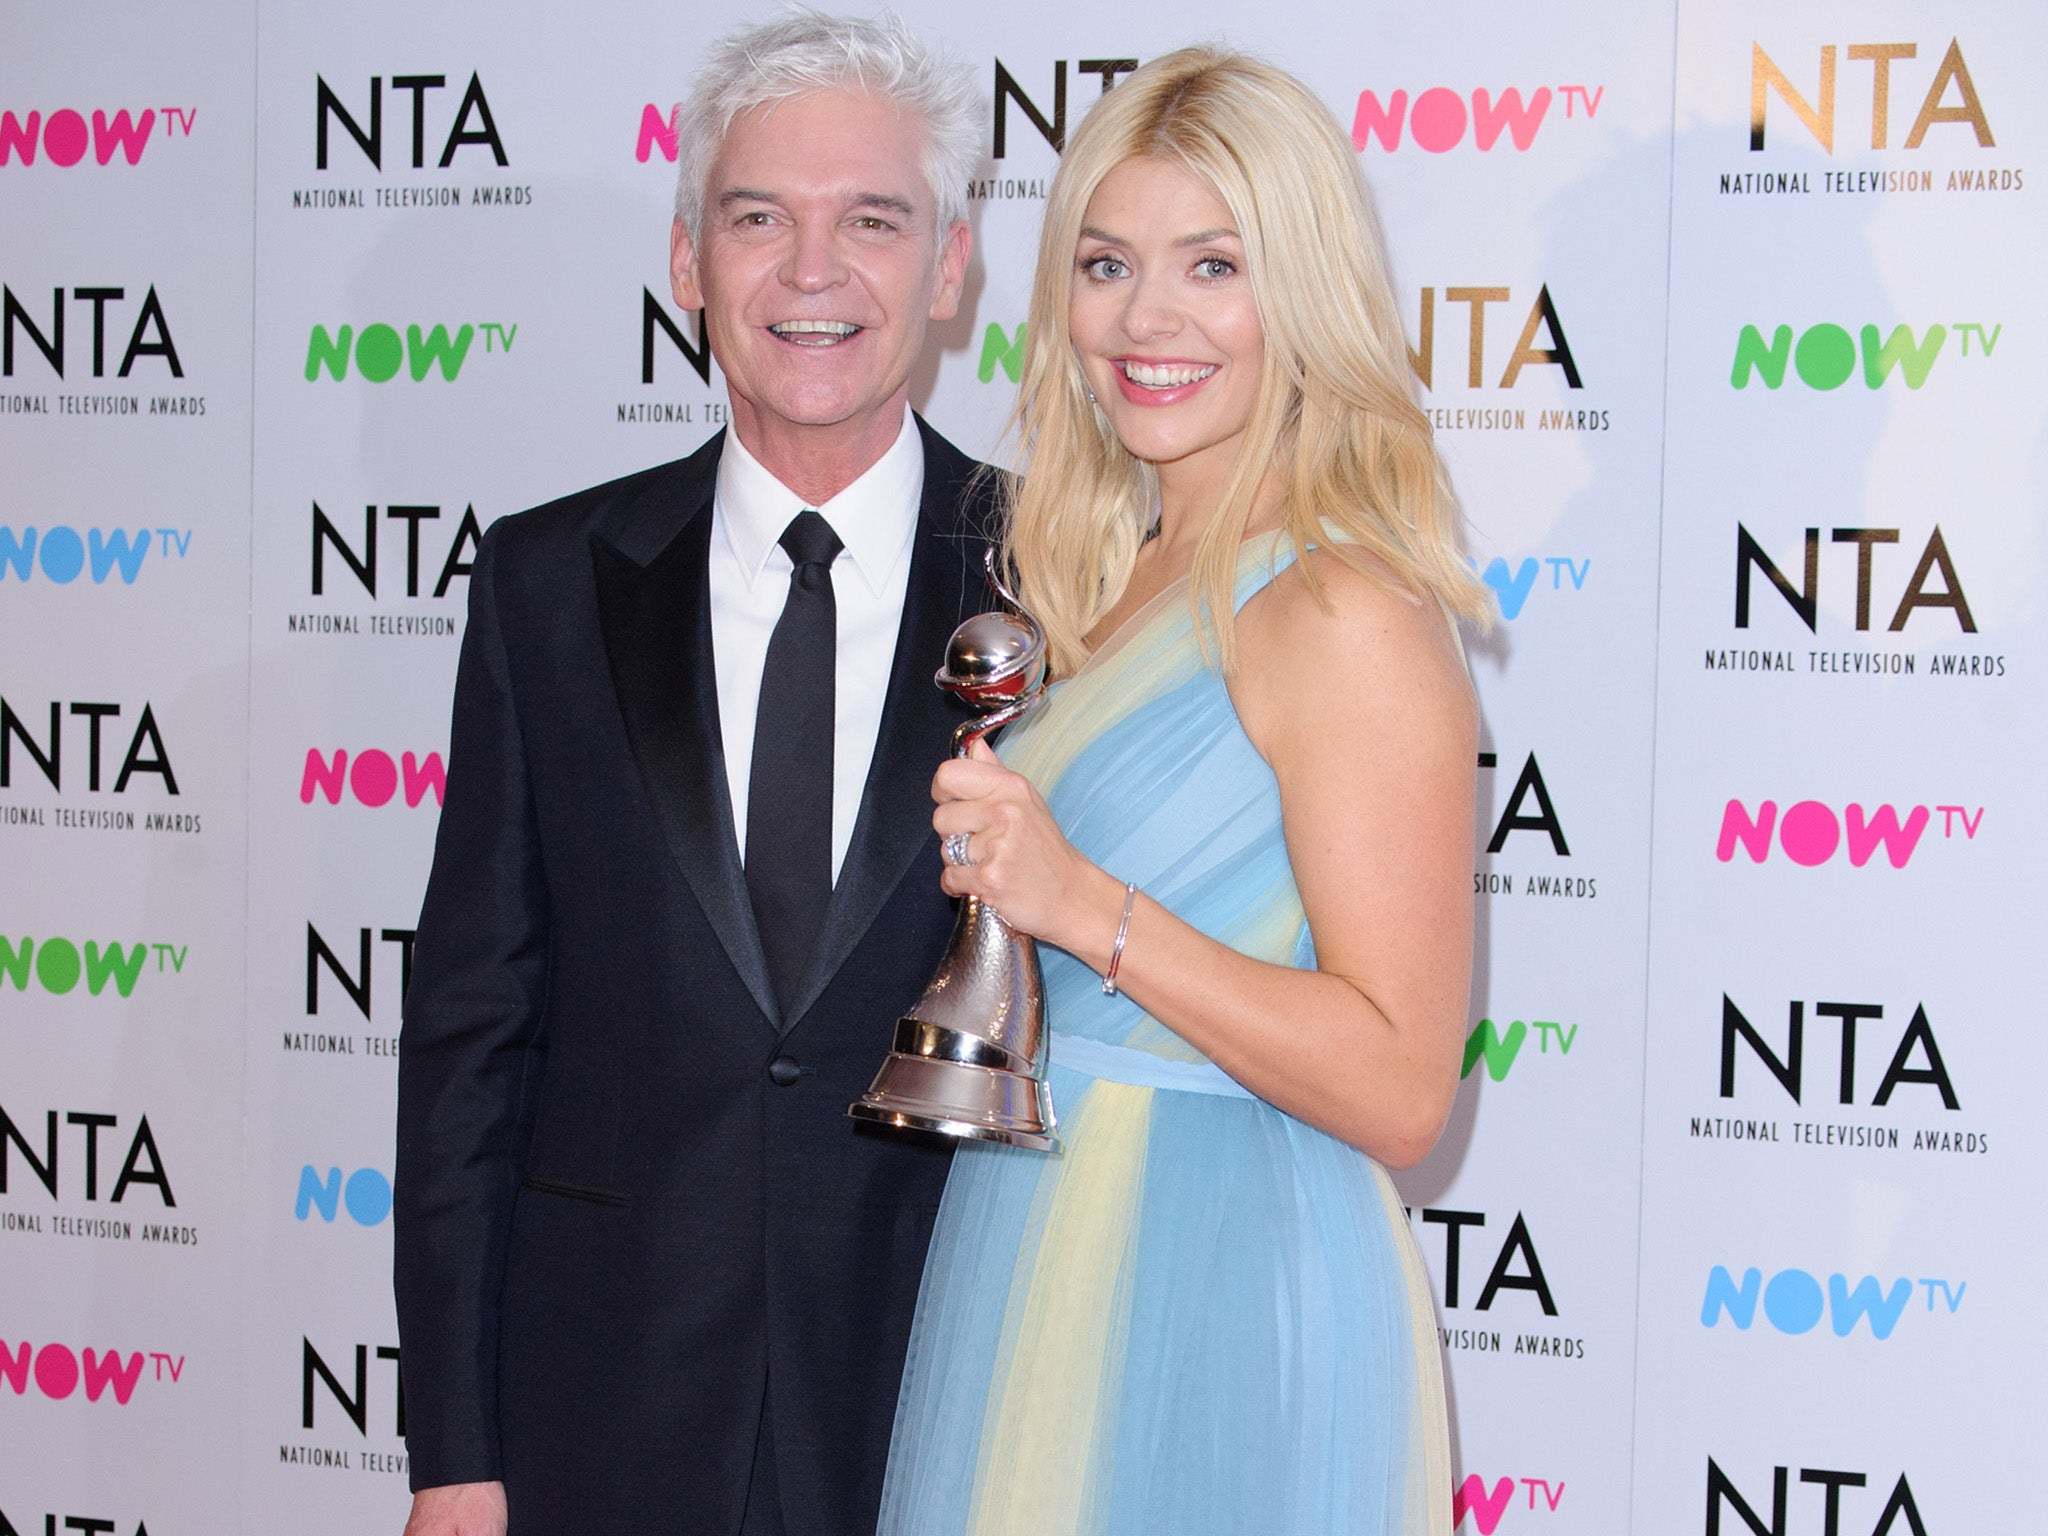 National Television Awards: Full list of 2018 winners | The